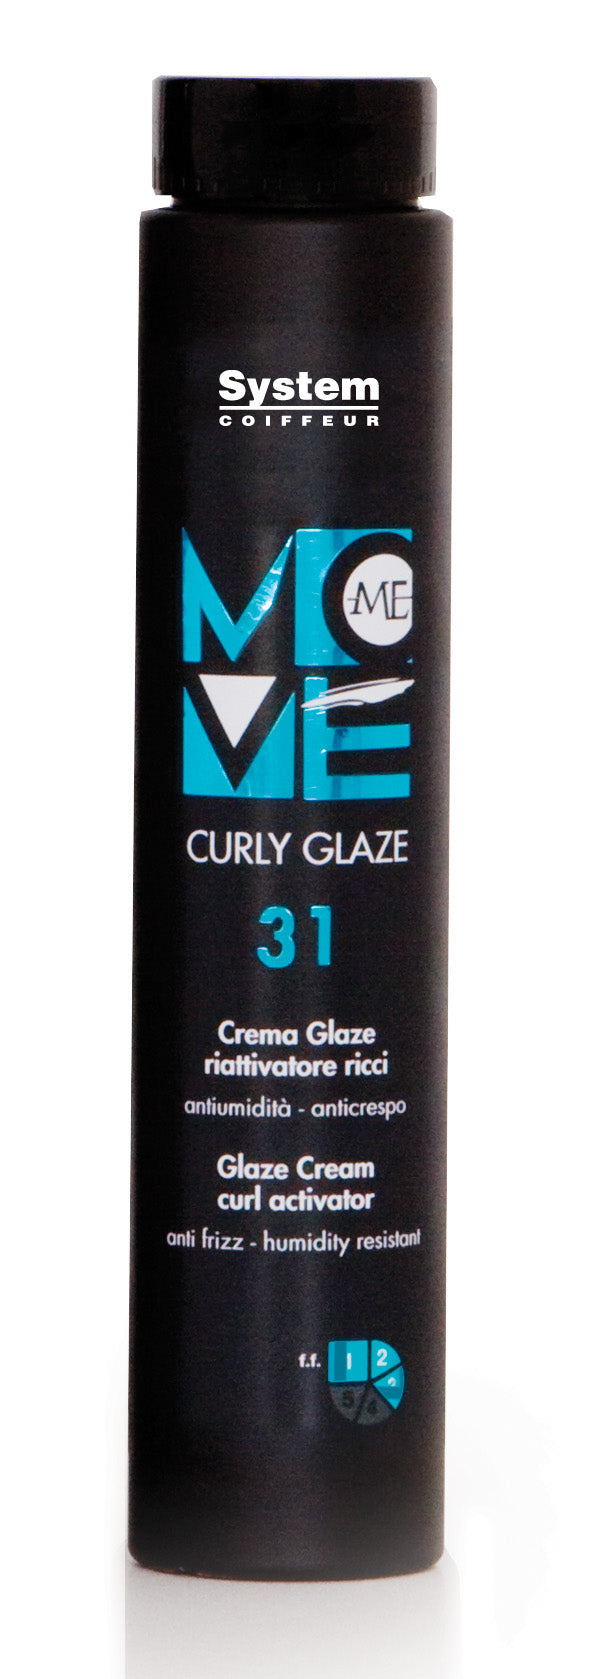 31 Curly Glaze 250ml